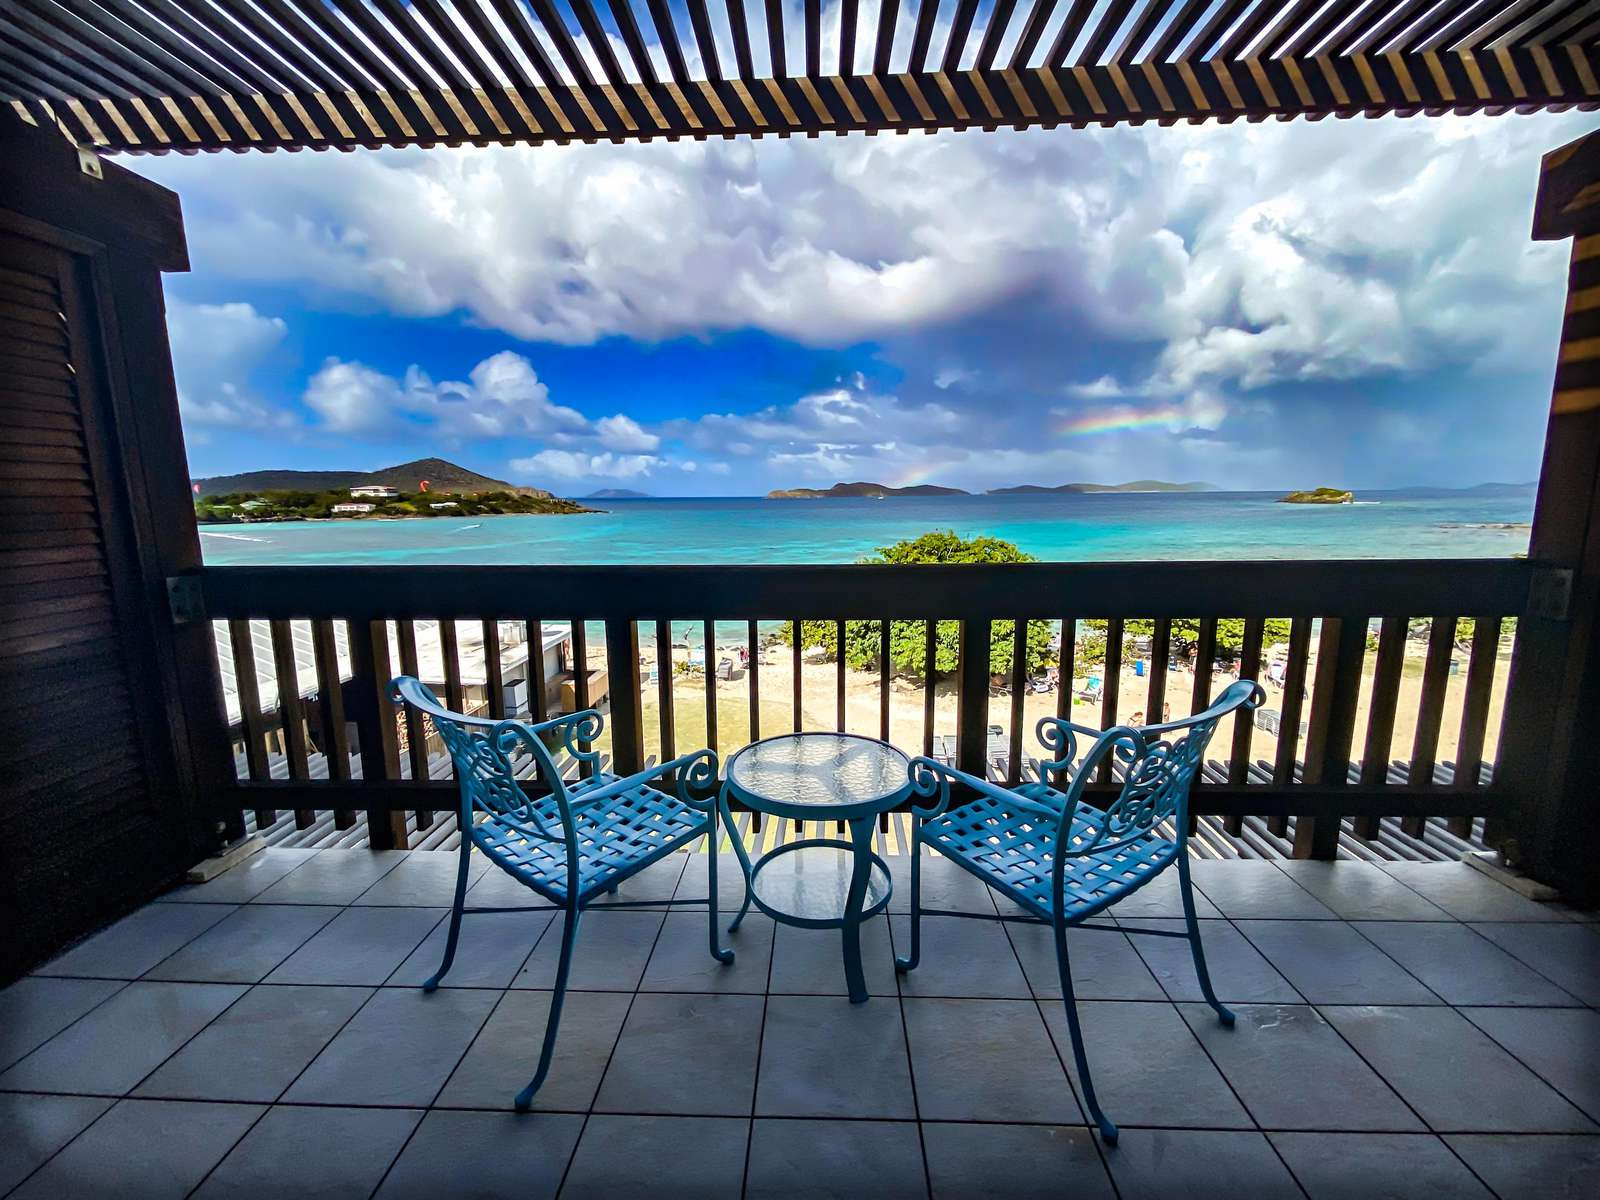 The private balcony off the master bedroom overlooking the beach - It doesn't get any better than this!